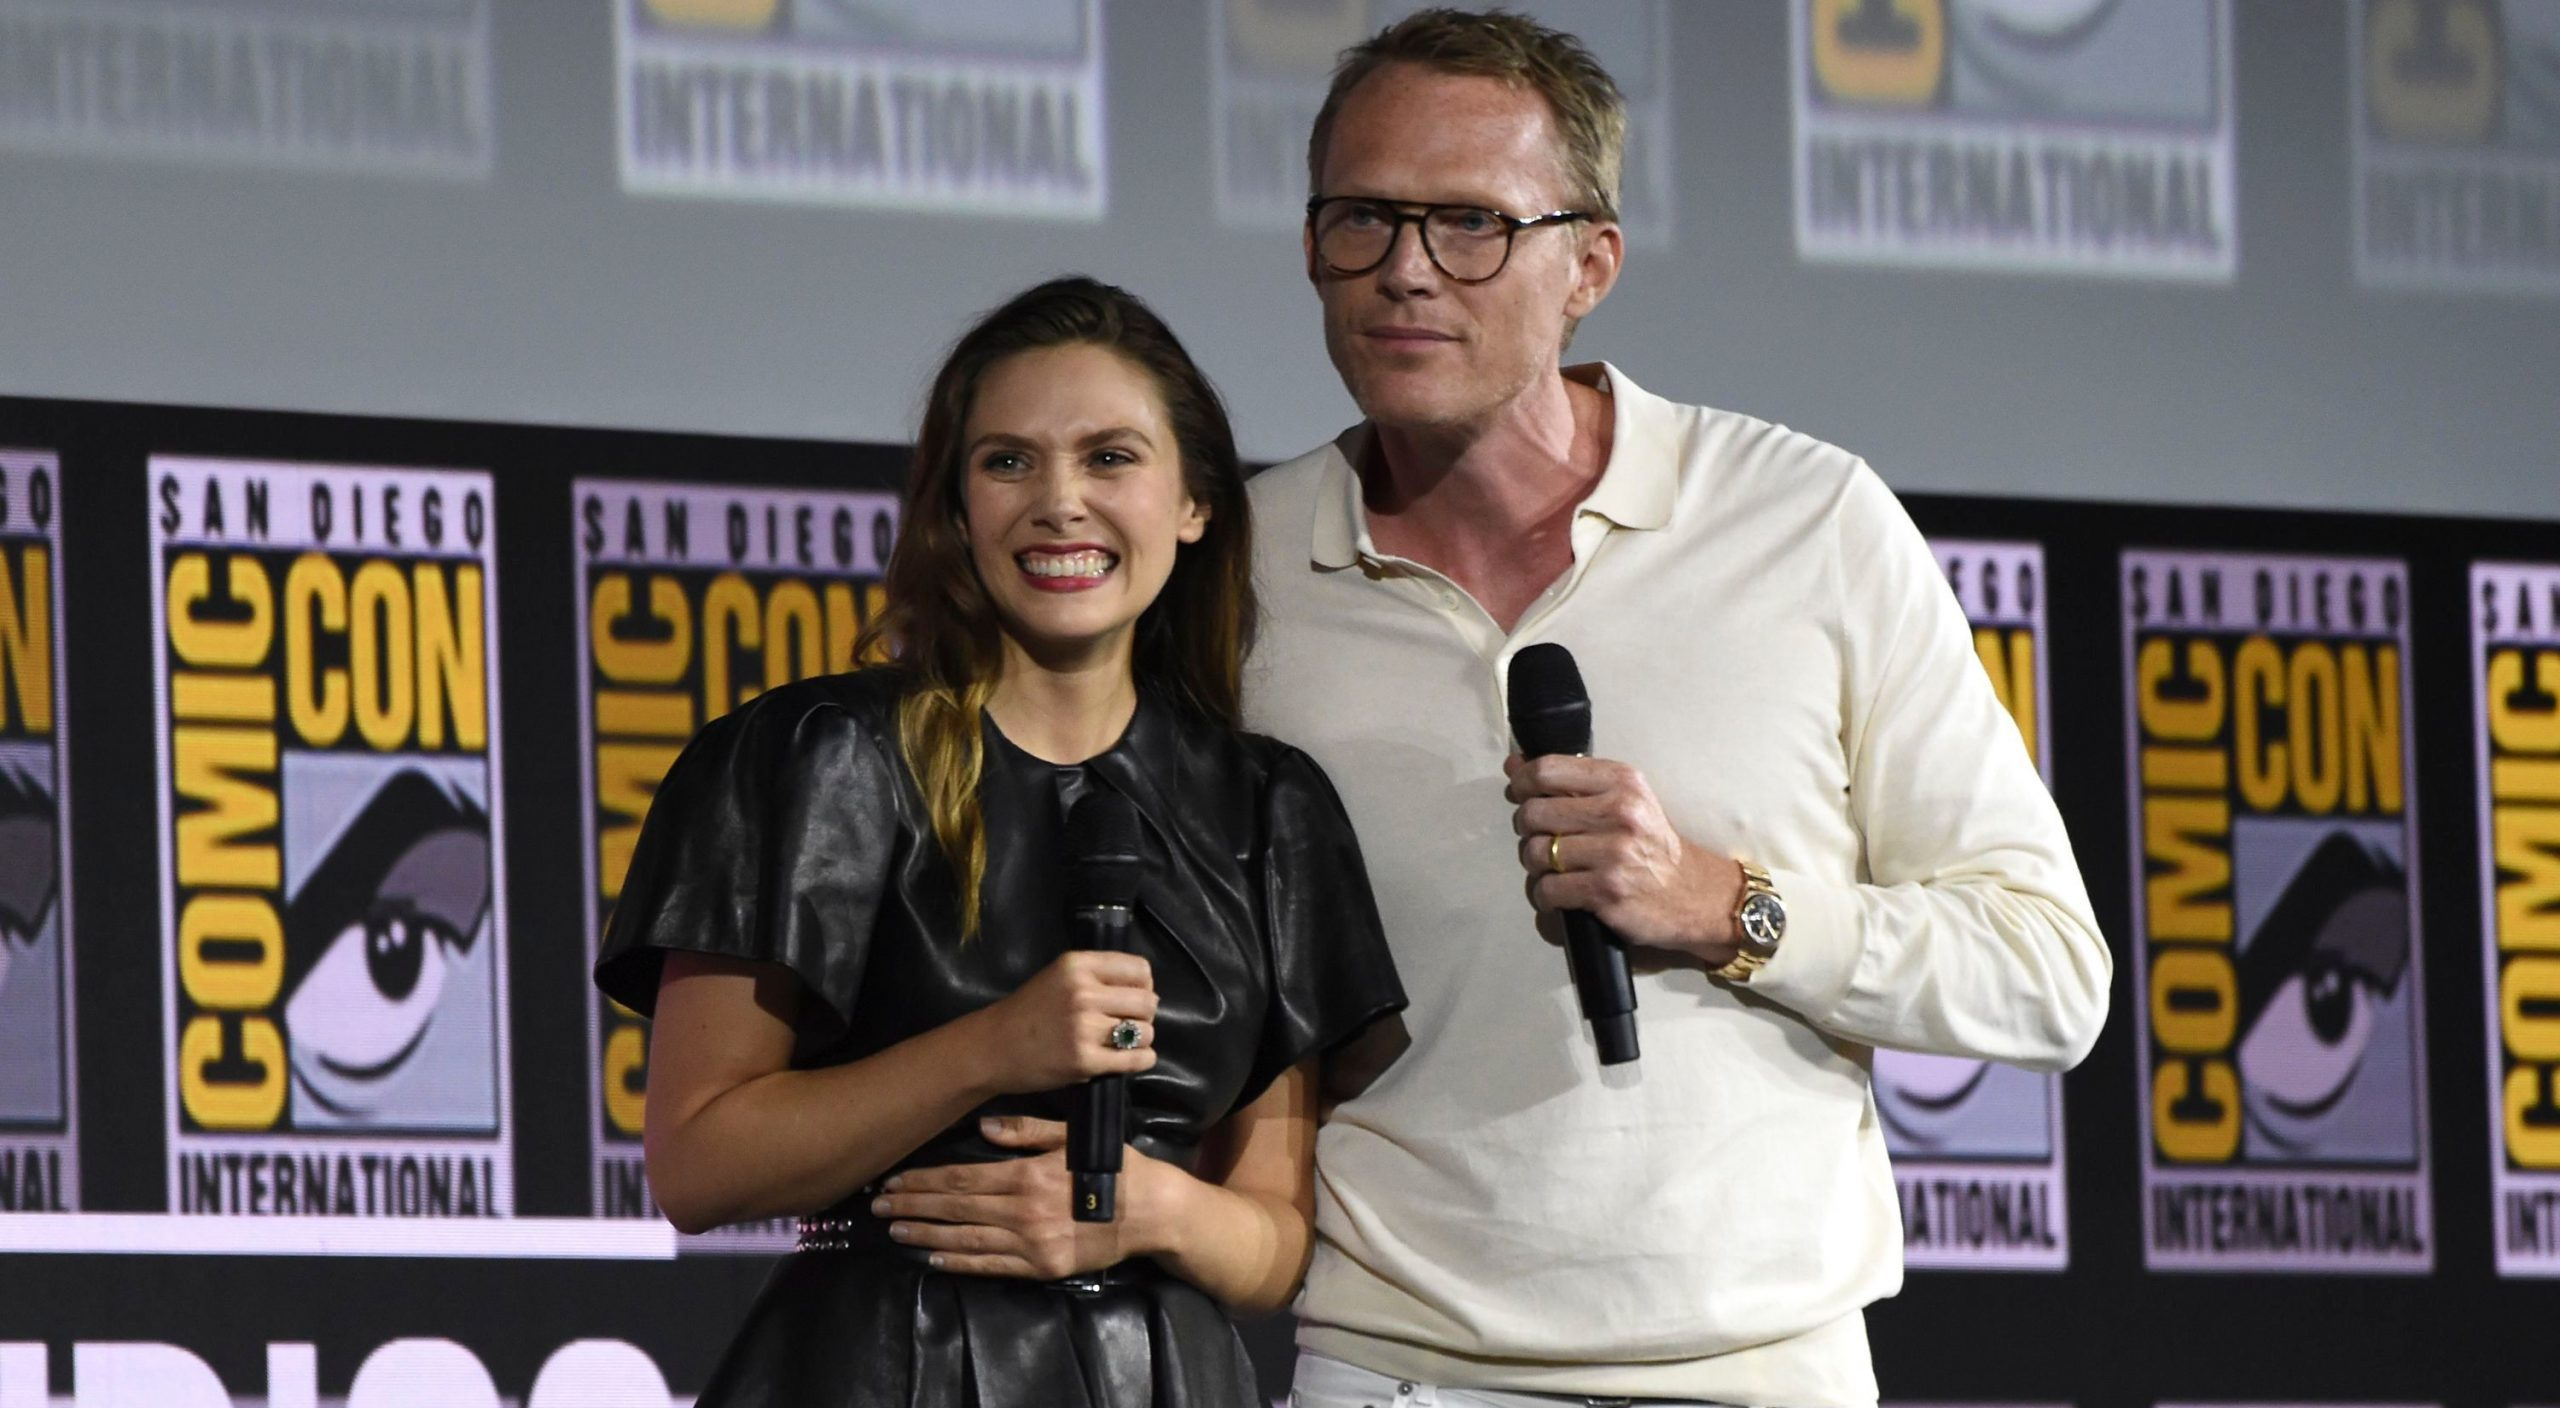 An image of Elizabeth Olsen on the left and Paul Bettany on the right at Comic-Con.